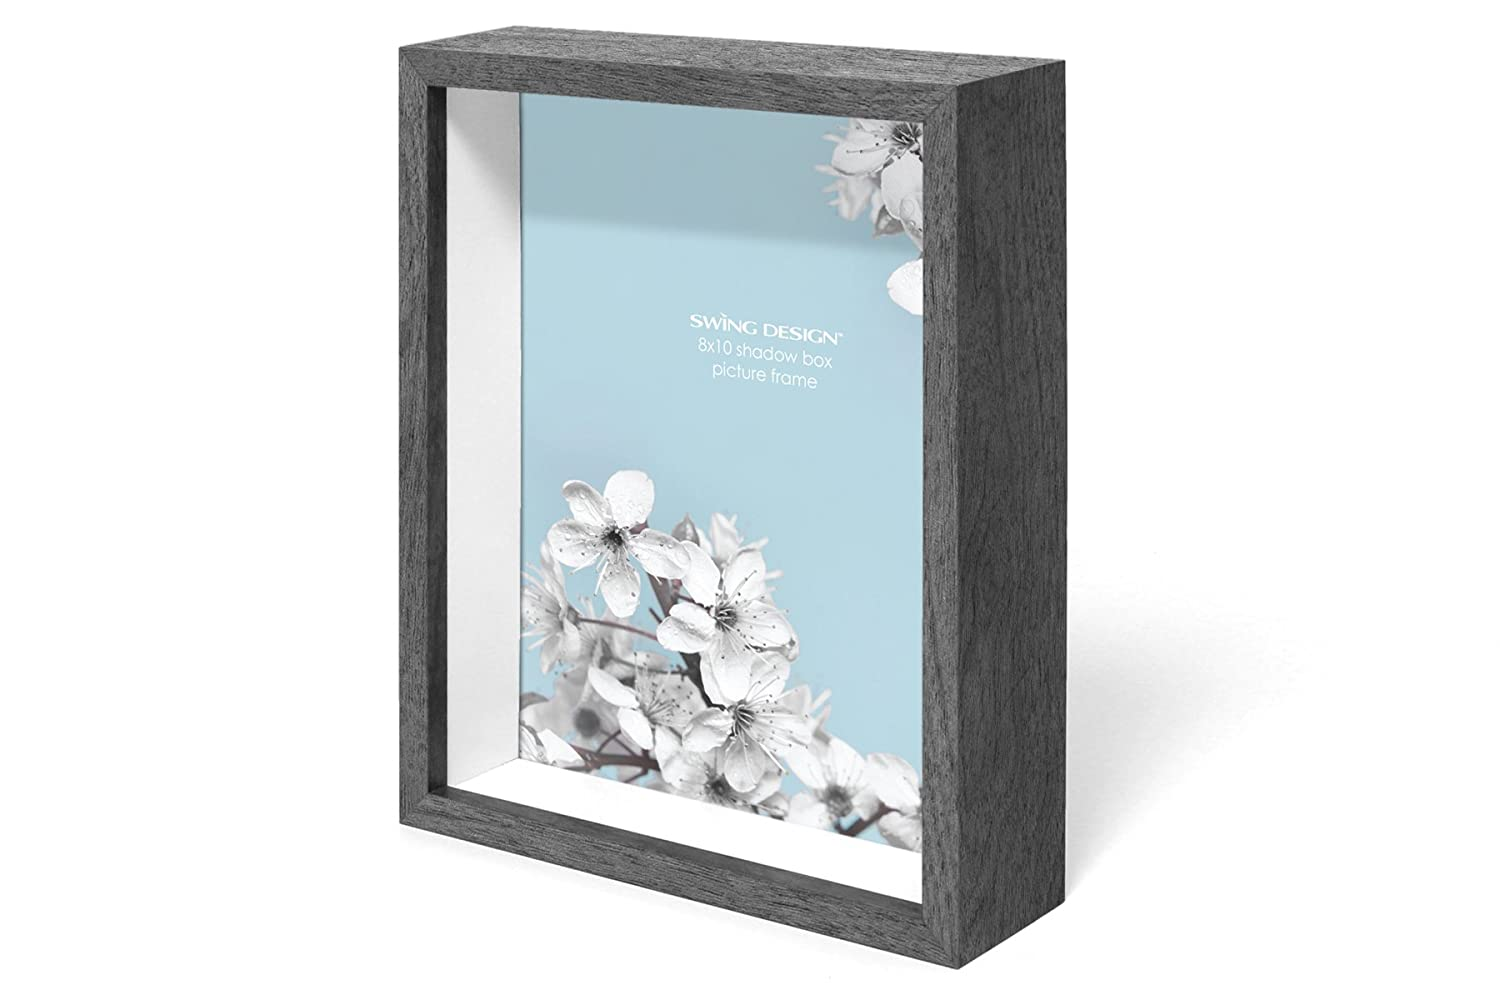 Amazon.com - Swing Design Chroma Shadow Box Frame, 8 by 10-Inch ...